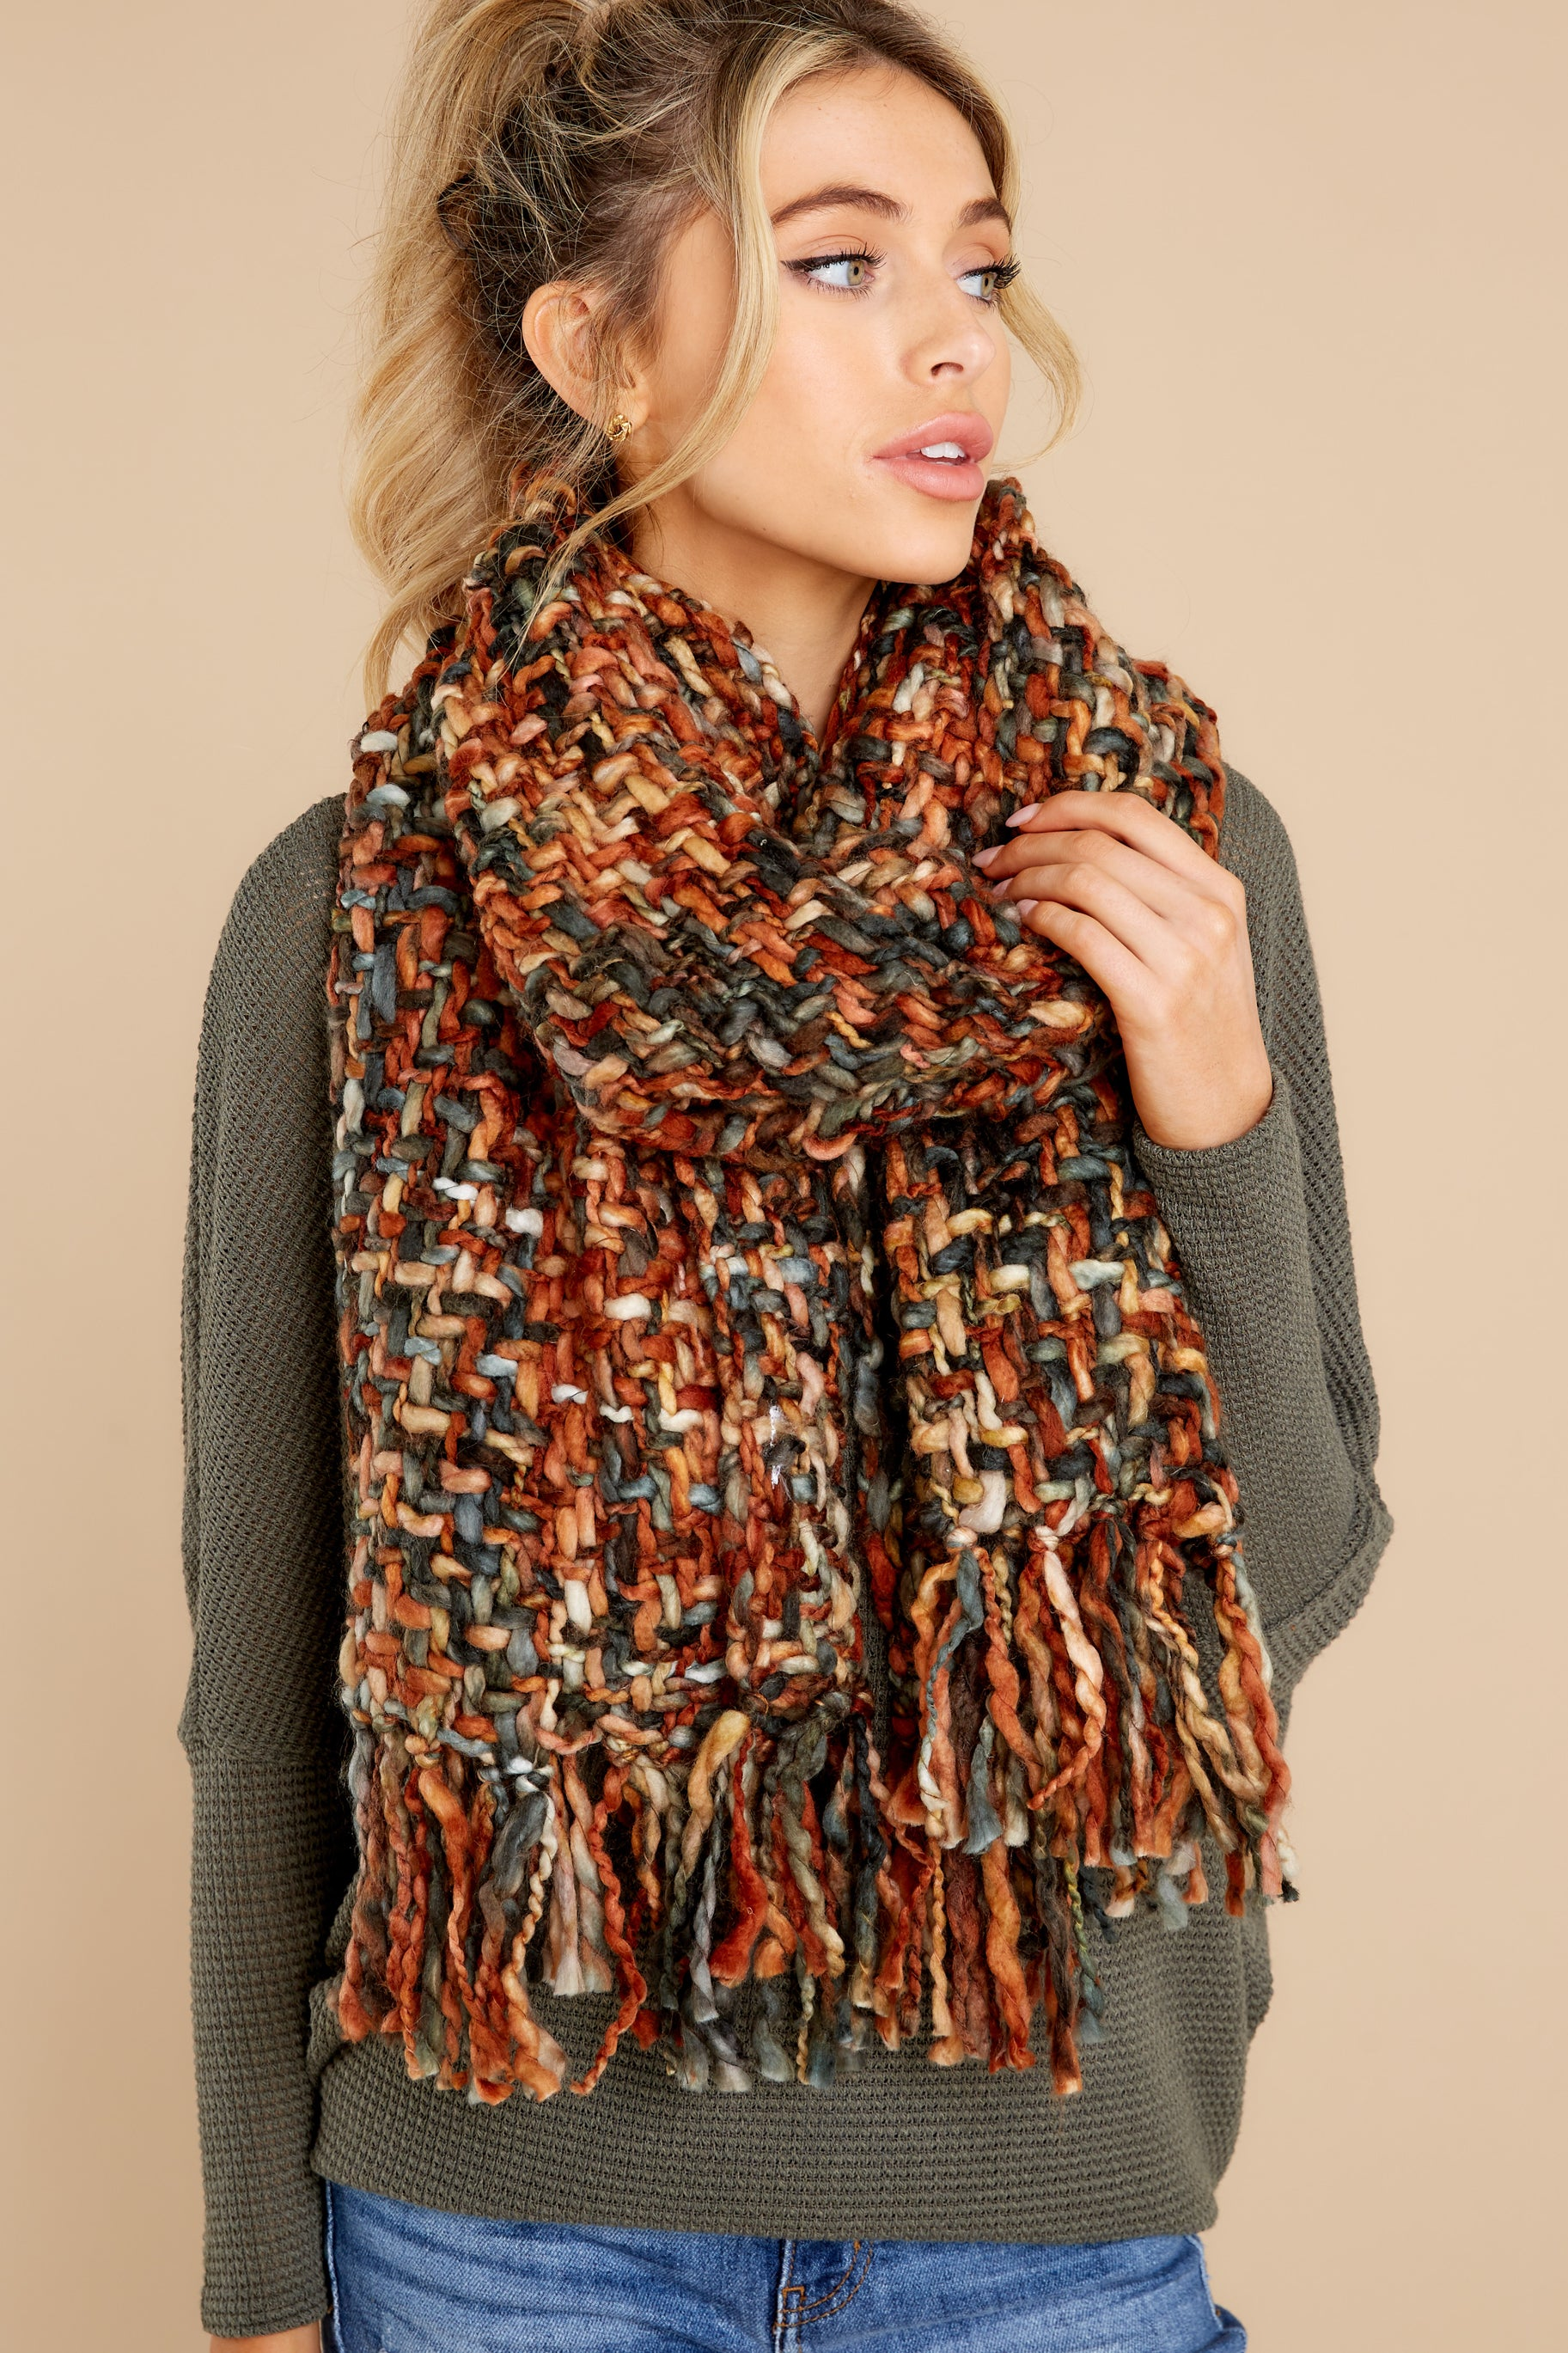 1 Around The Fire Rust And Black Multi Knit Scarf at reddress.com